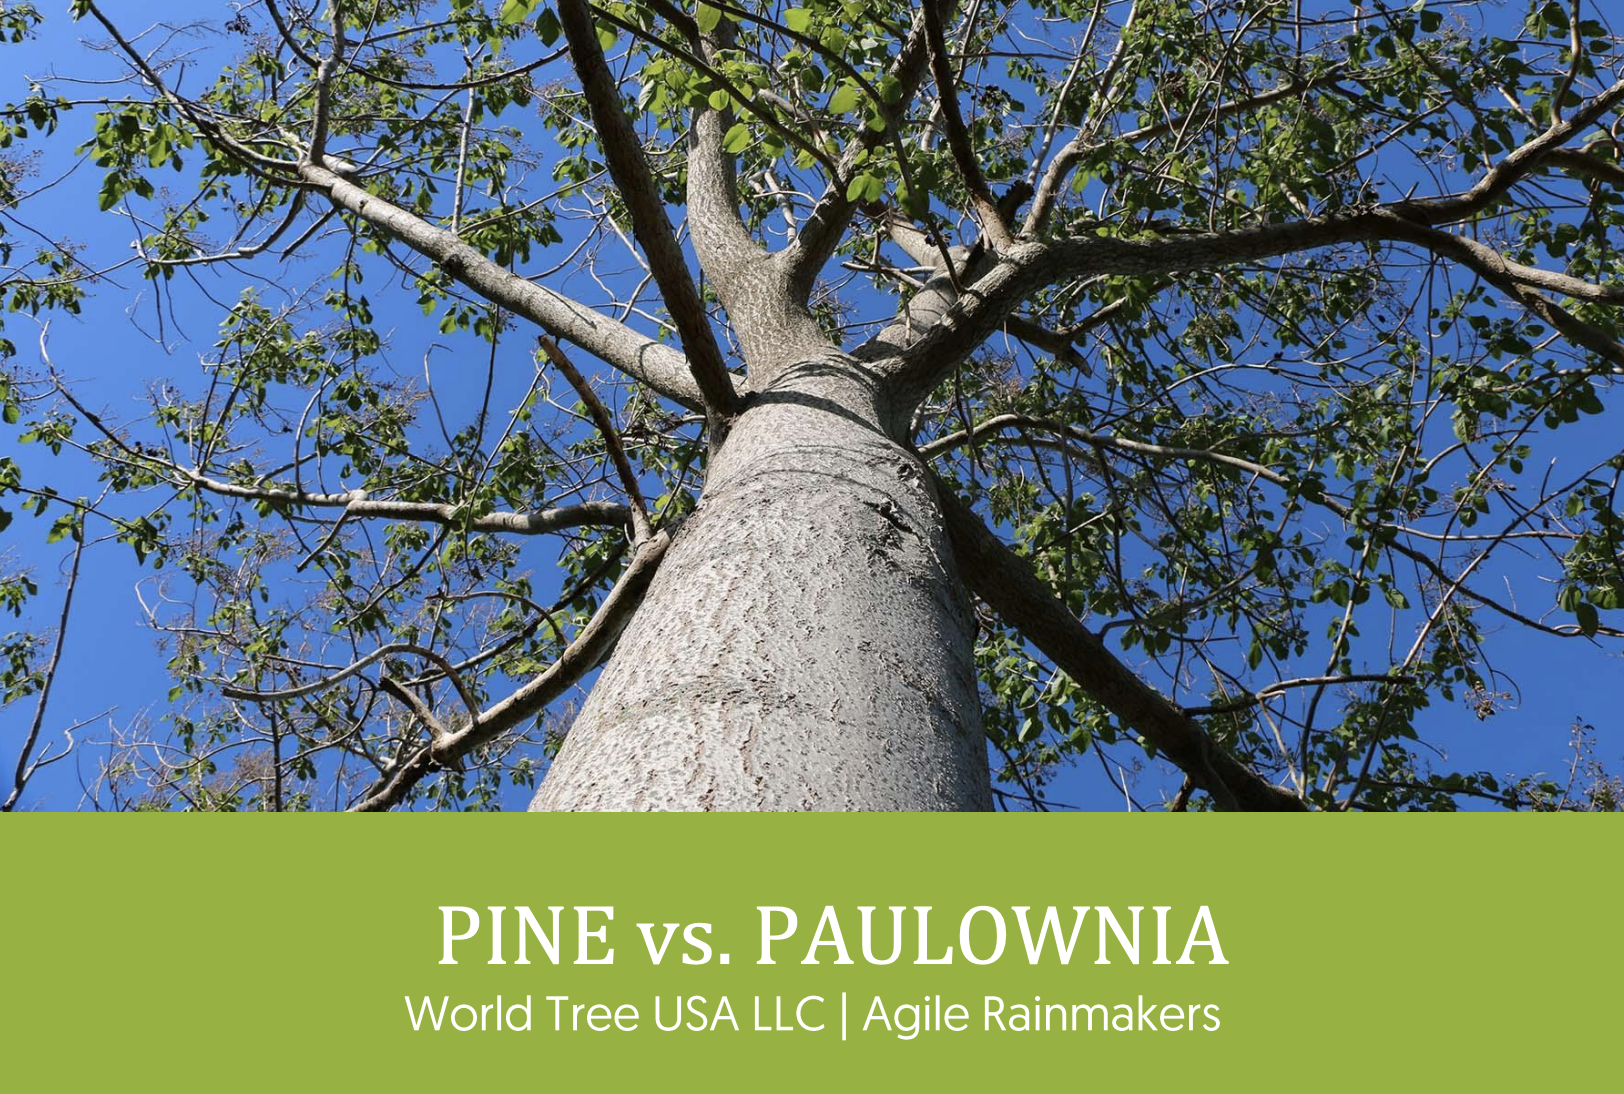 Receive a copy of the Pine vs. Paulownia Report